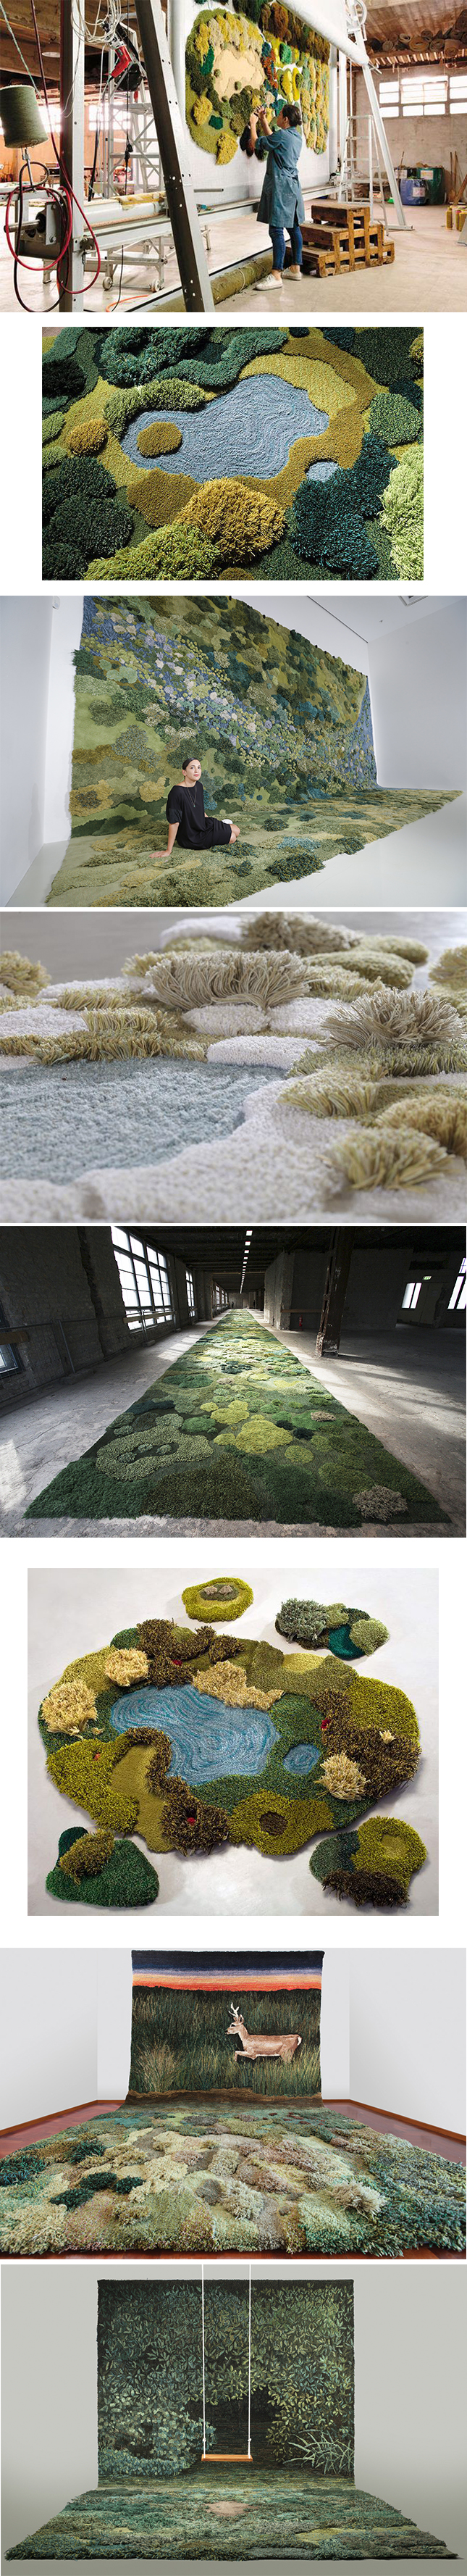 decoradornet-design-rug-carpet-natureza-nature-blog